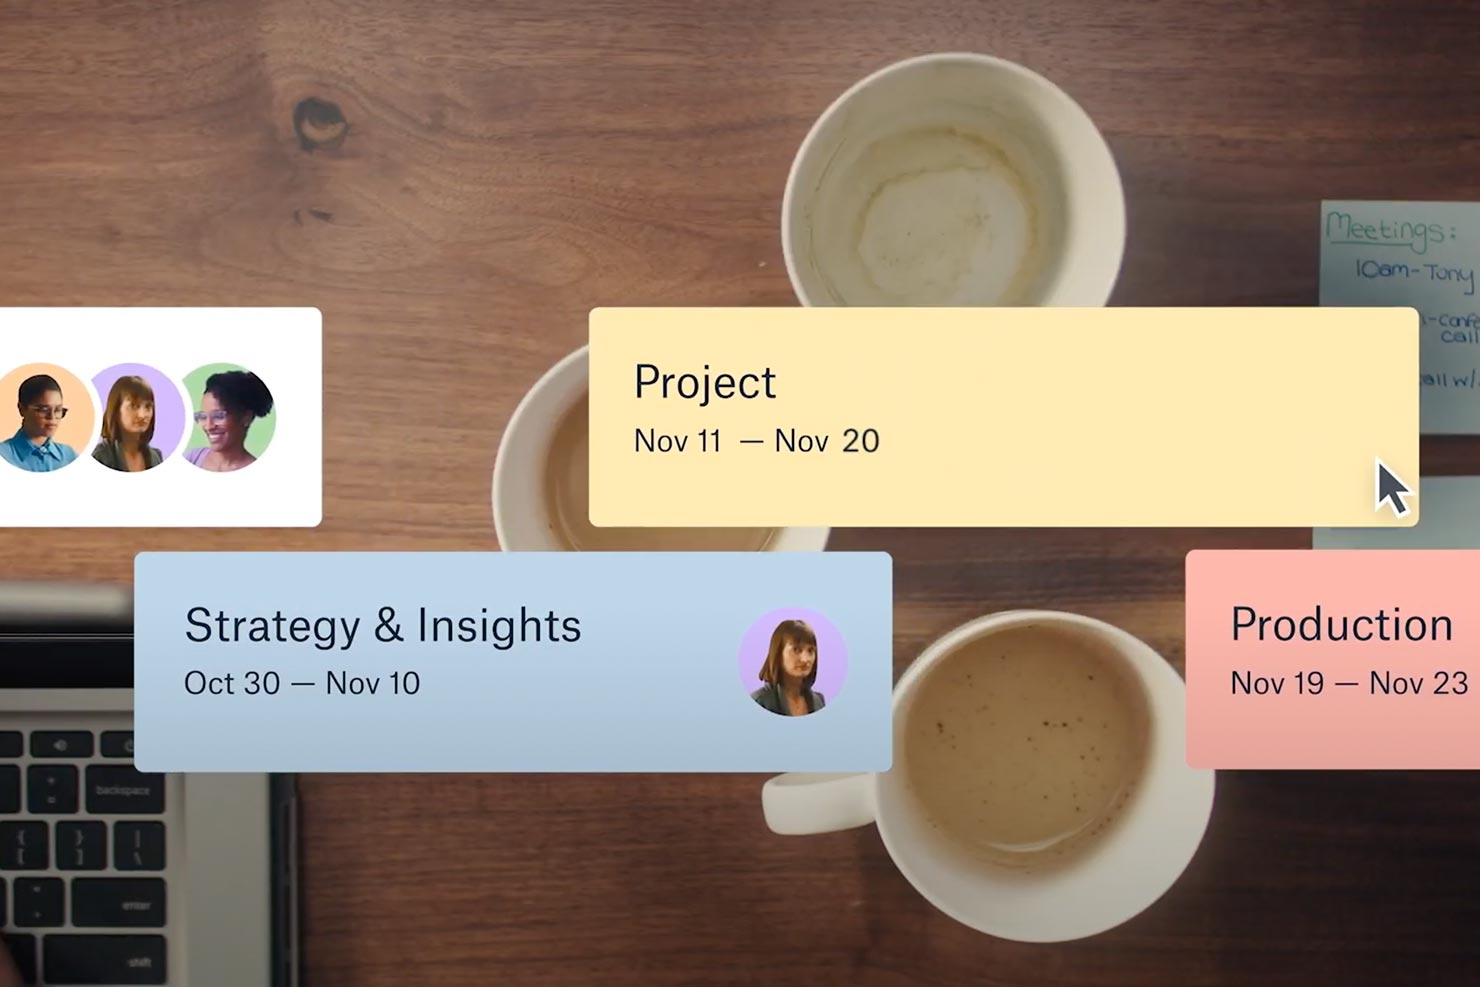 Bird's-eye view of three coffee cups with calendar prompts superimposed on top